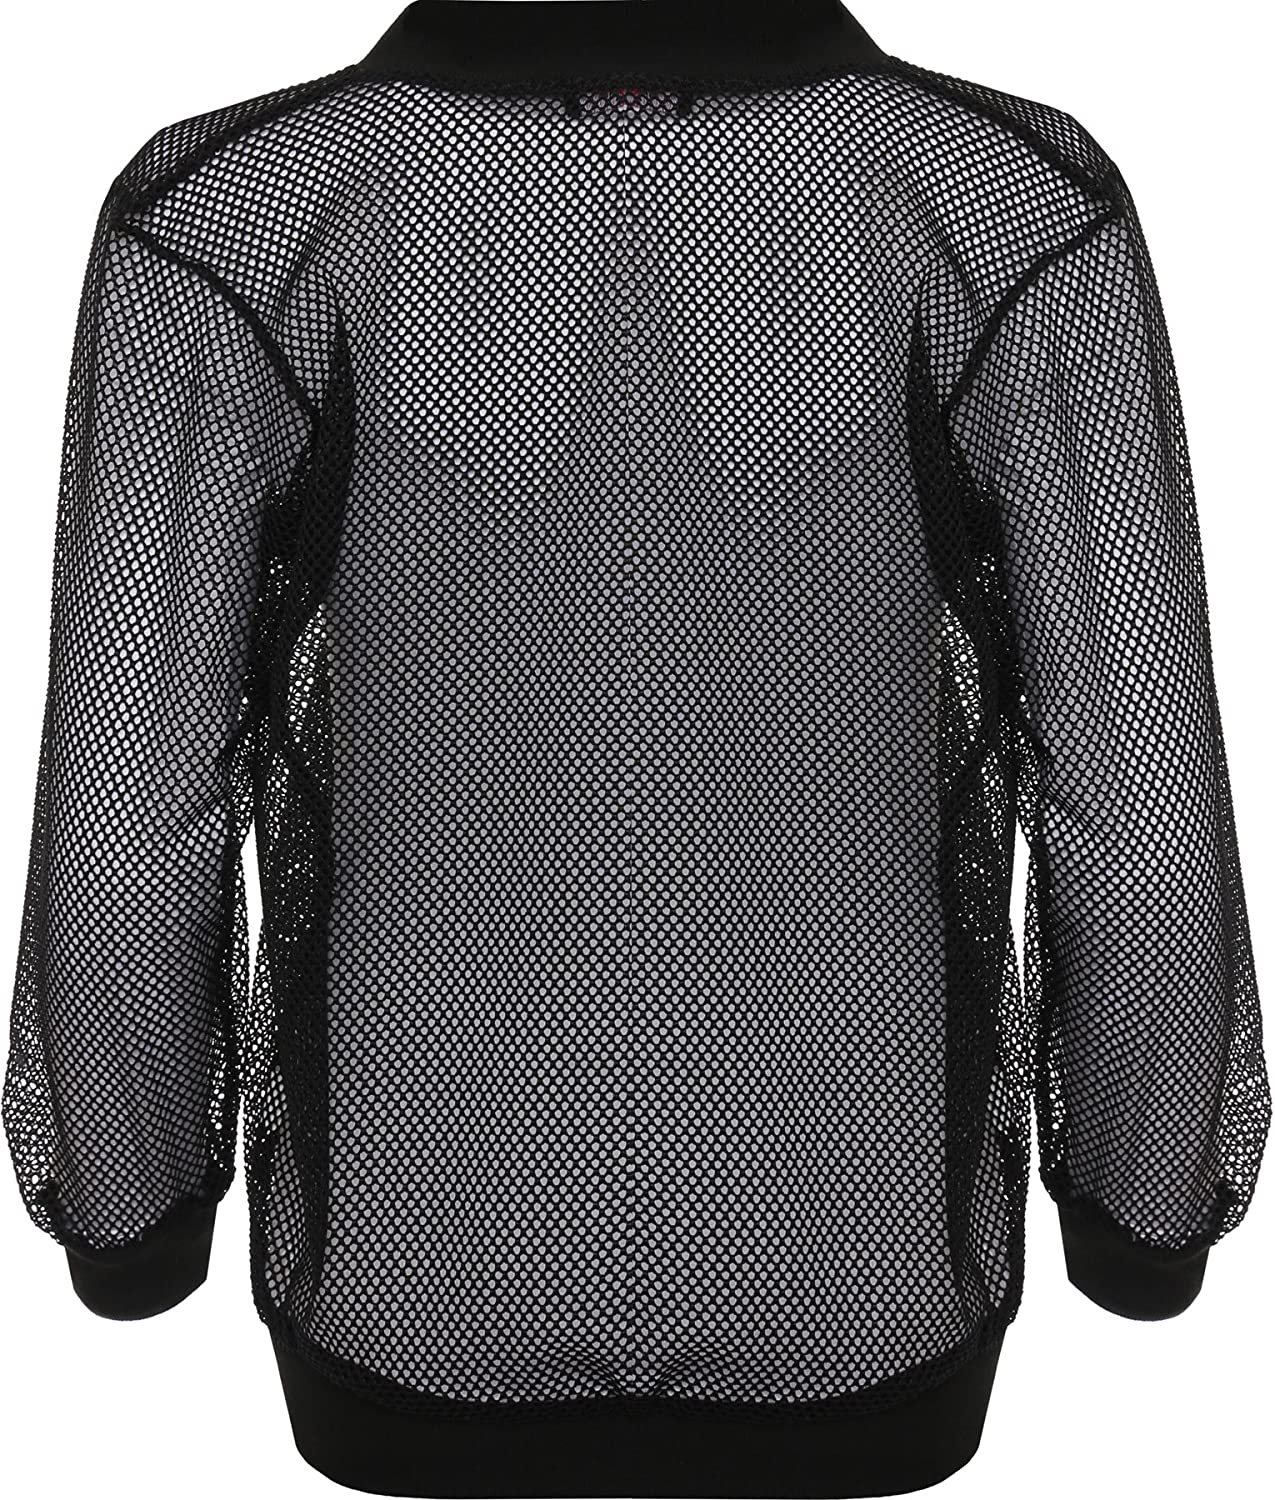 091a85ff0 Wearall Women's Plus Mesh Bomber Jacket Long Sleeve Net Plain Zip Top